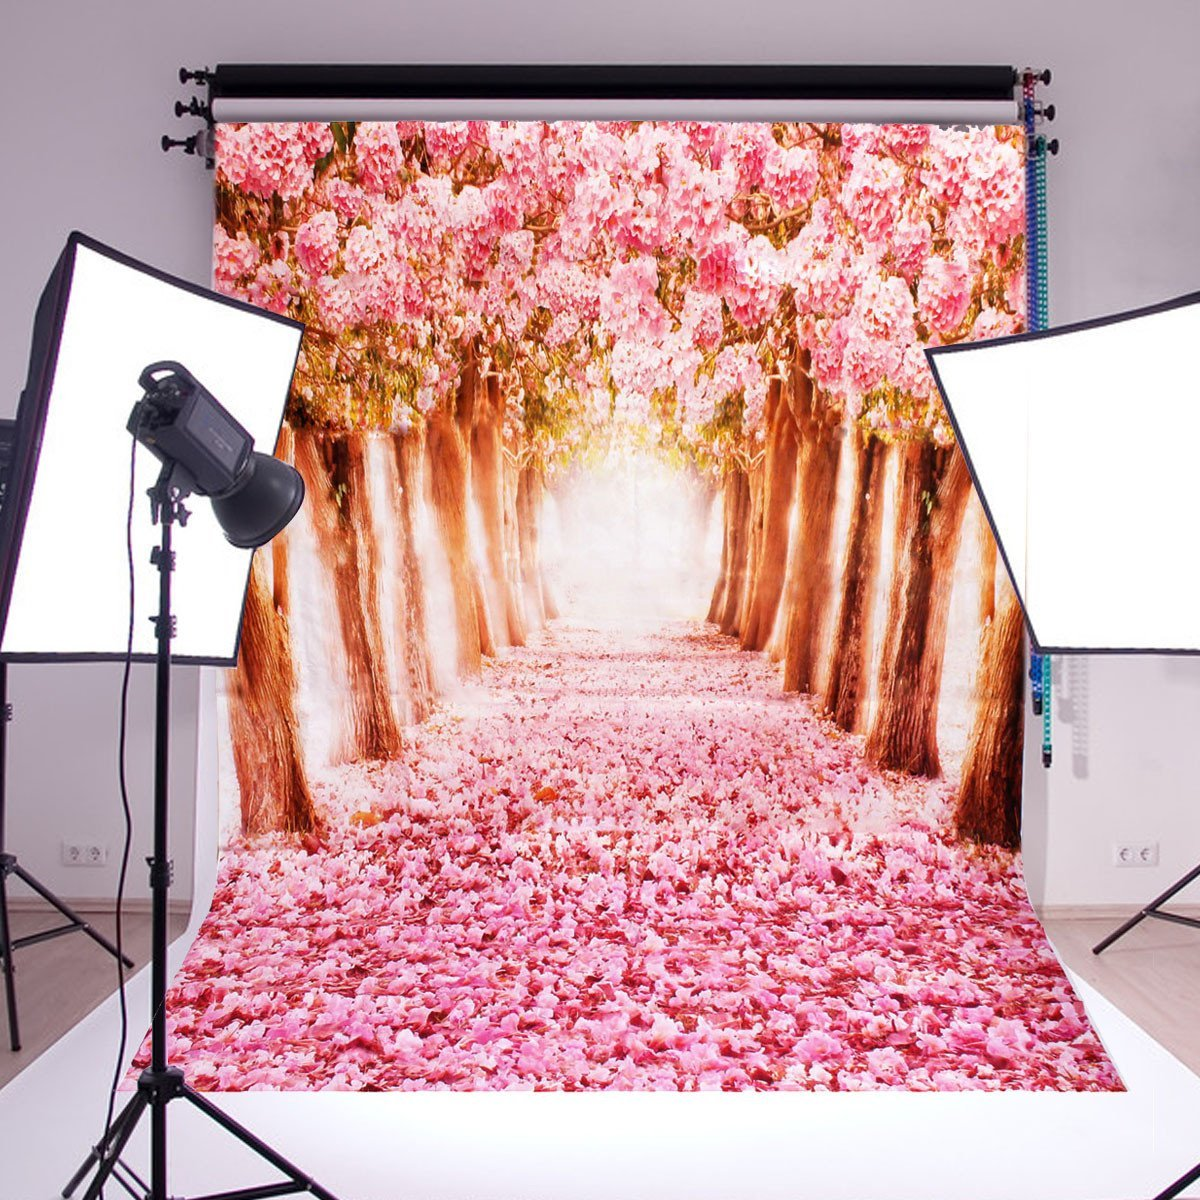 NK HOME Studio Photo Video Photography Backdrop 5x7ft Pink Forest Skaura Trees Scenic Printed Vinyl Fabric Party Decorations Background Screen Props